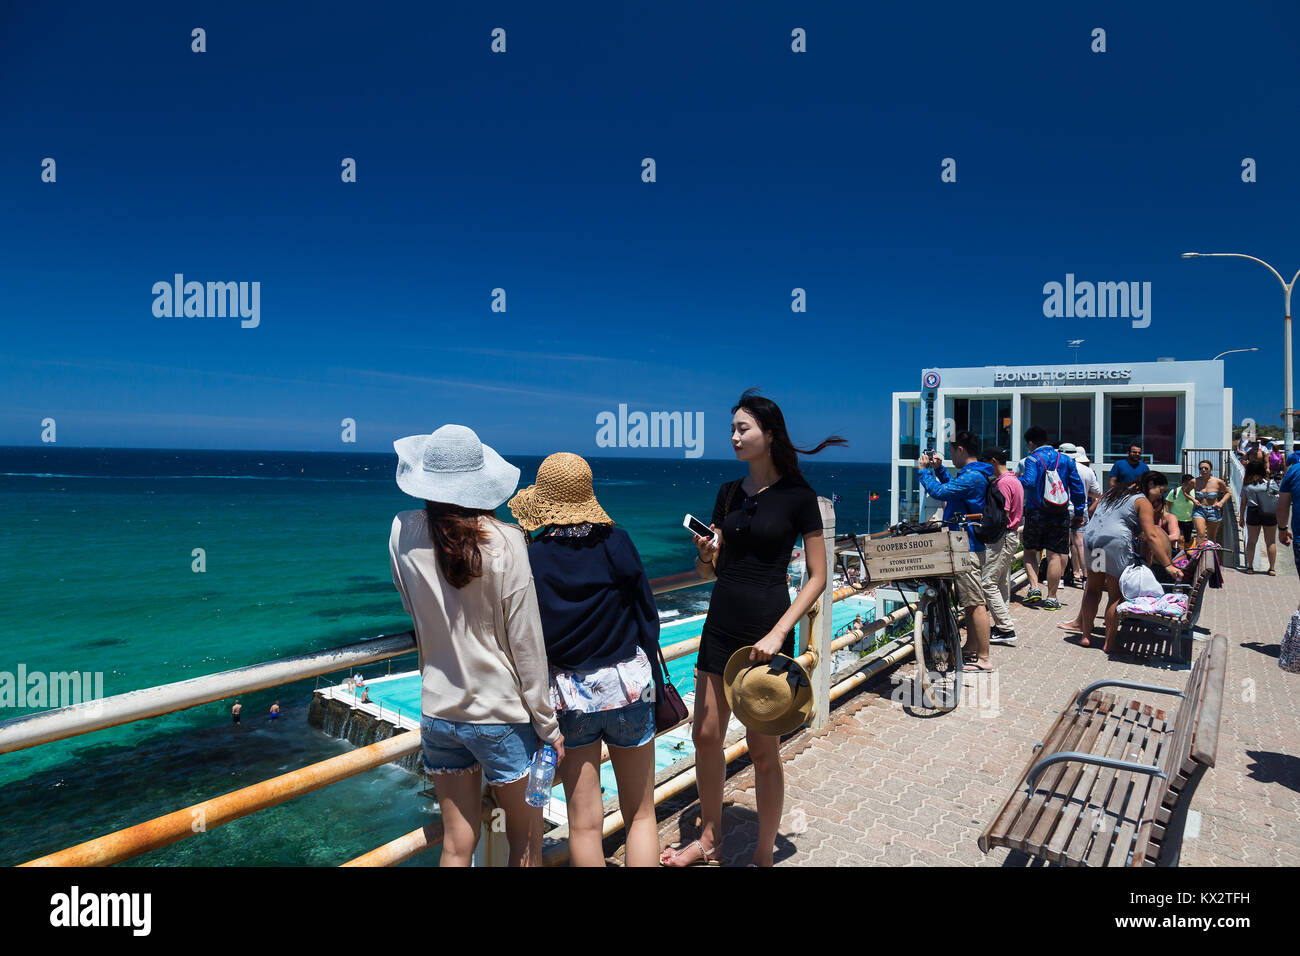 Japanese Tourists Stock Photos & Japanese Tourists Stock Images - Alamy